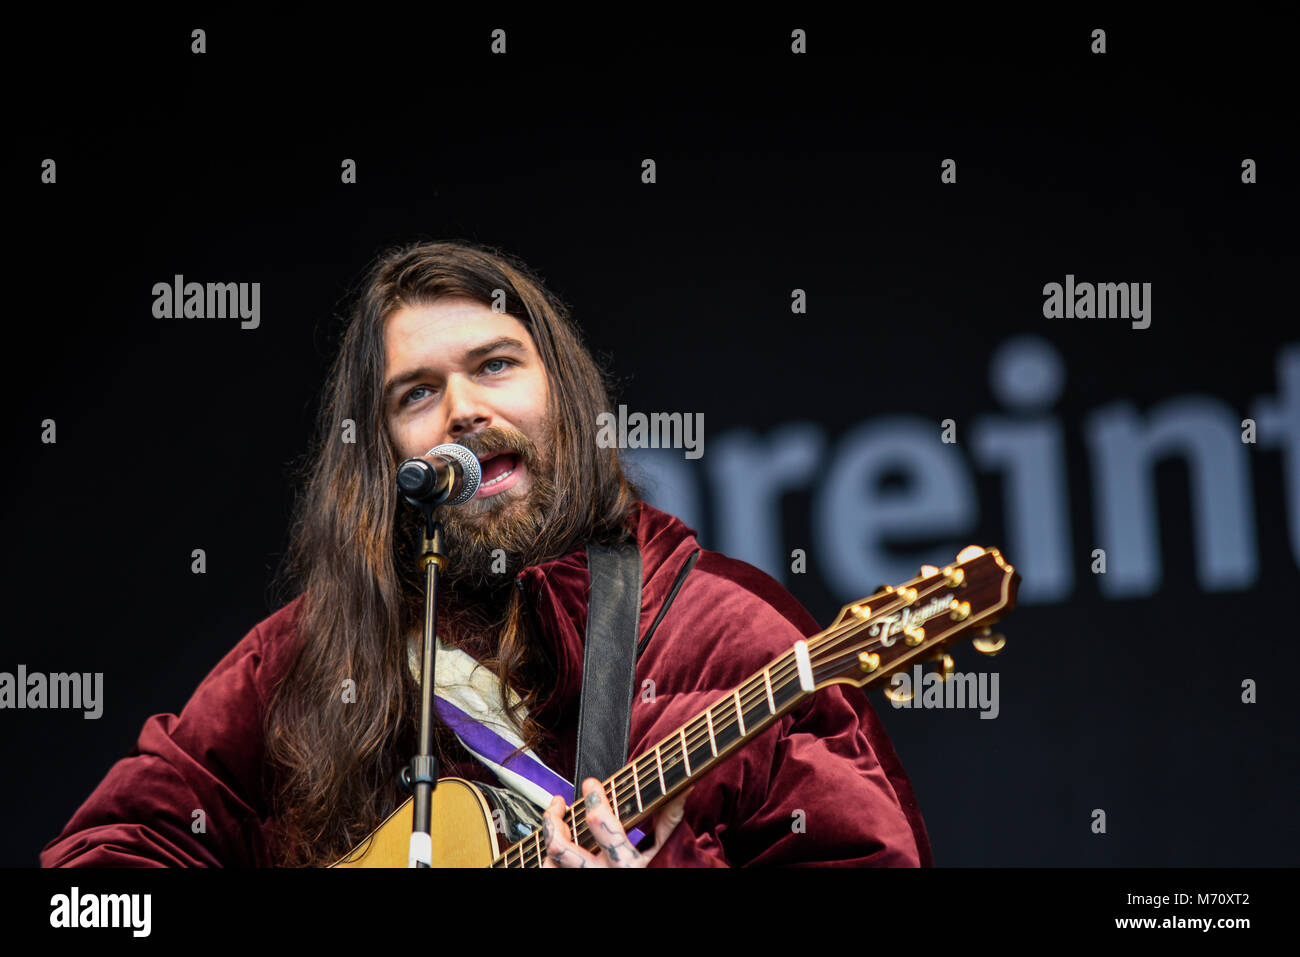 Simon Neil of Biffy Clyro performing at the March 4 Women women's equality protest organised by Care International - Stock Image